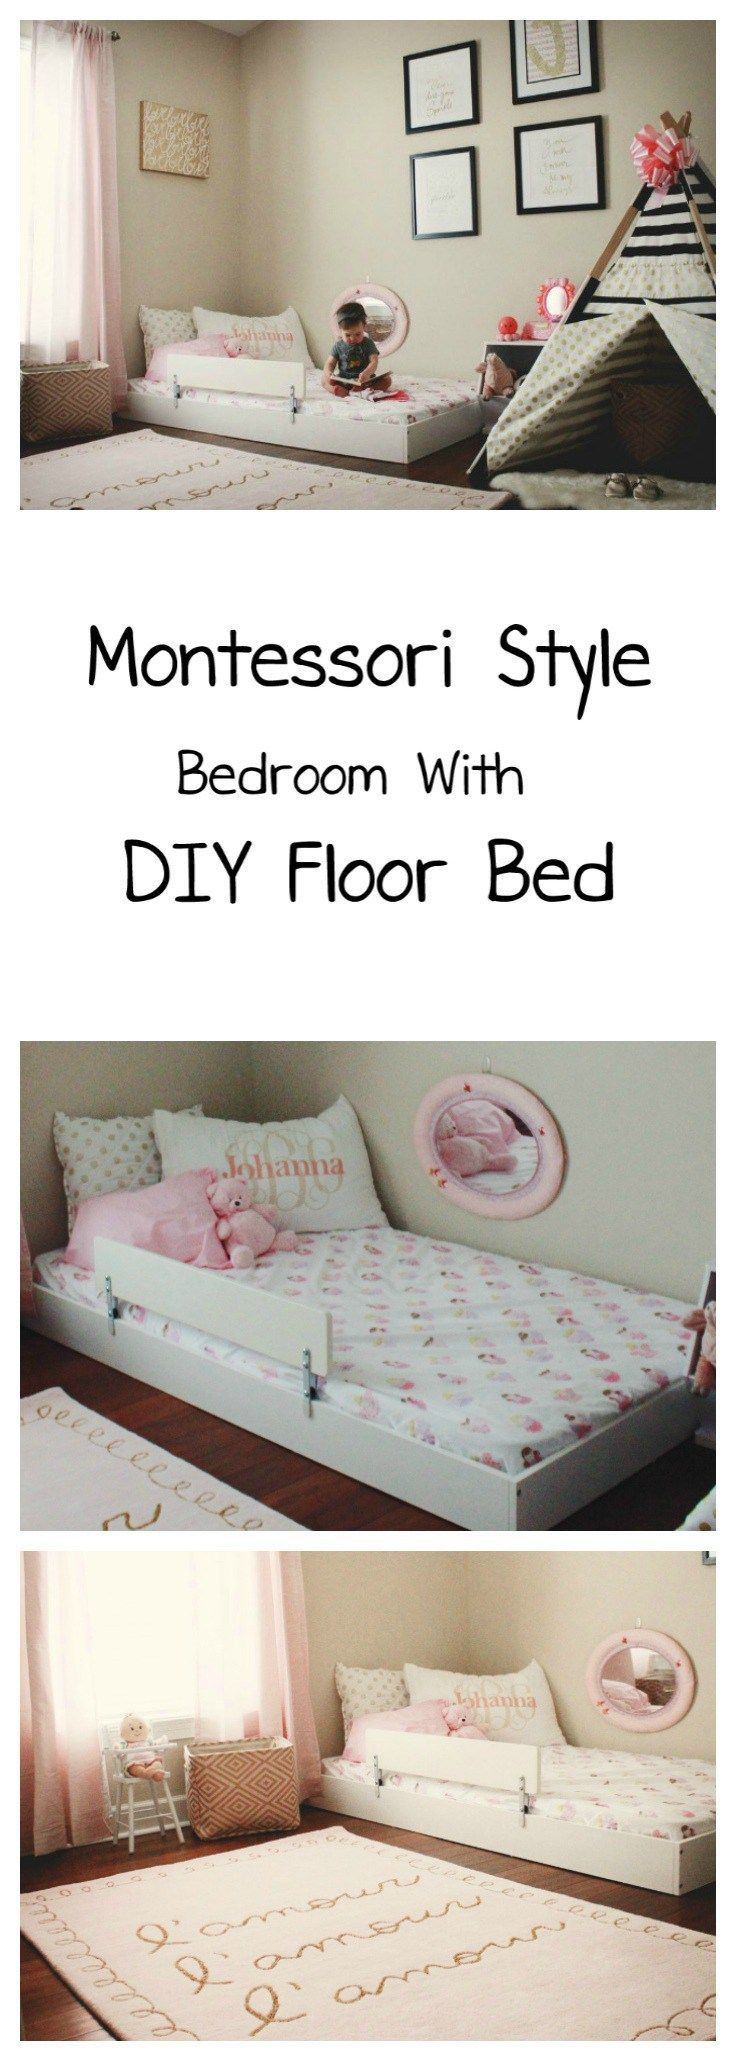 35 best montessori floor beds images on pinterest floor beds low